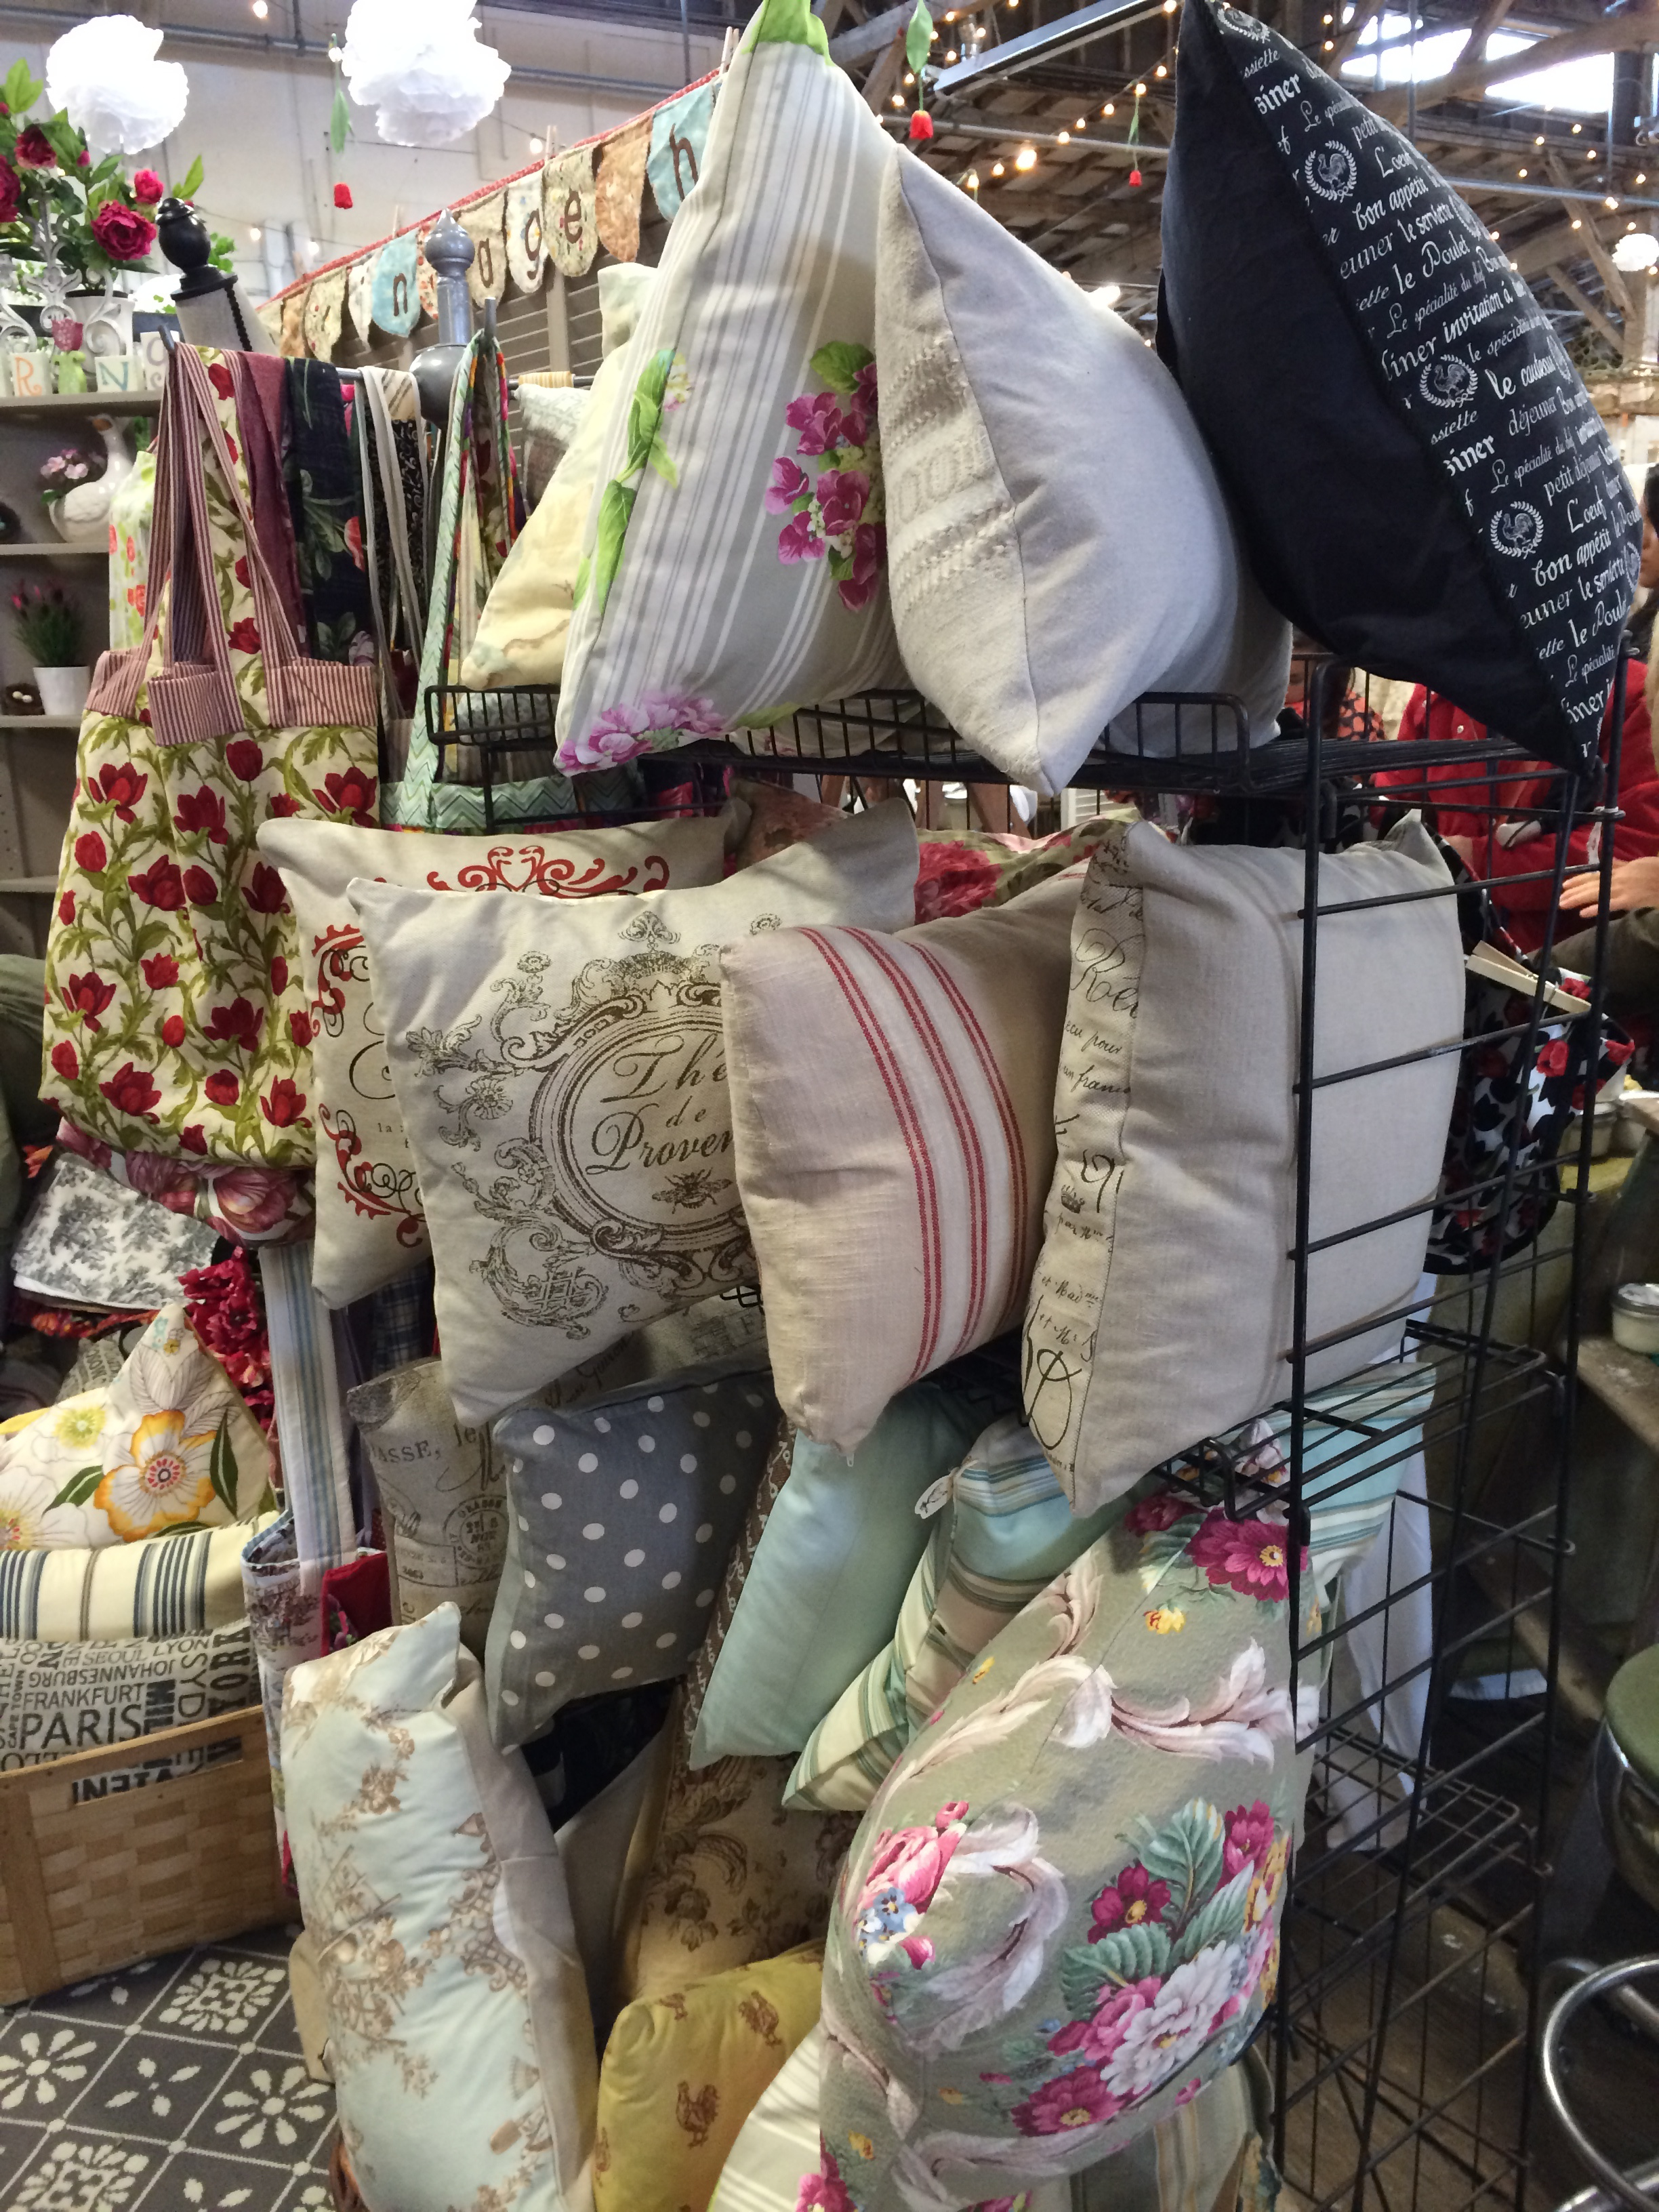 Pillows at Island Chicks...something for any decor style! (P.S. Rug on floor from IKEA).